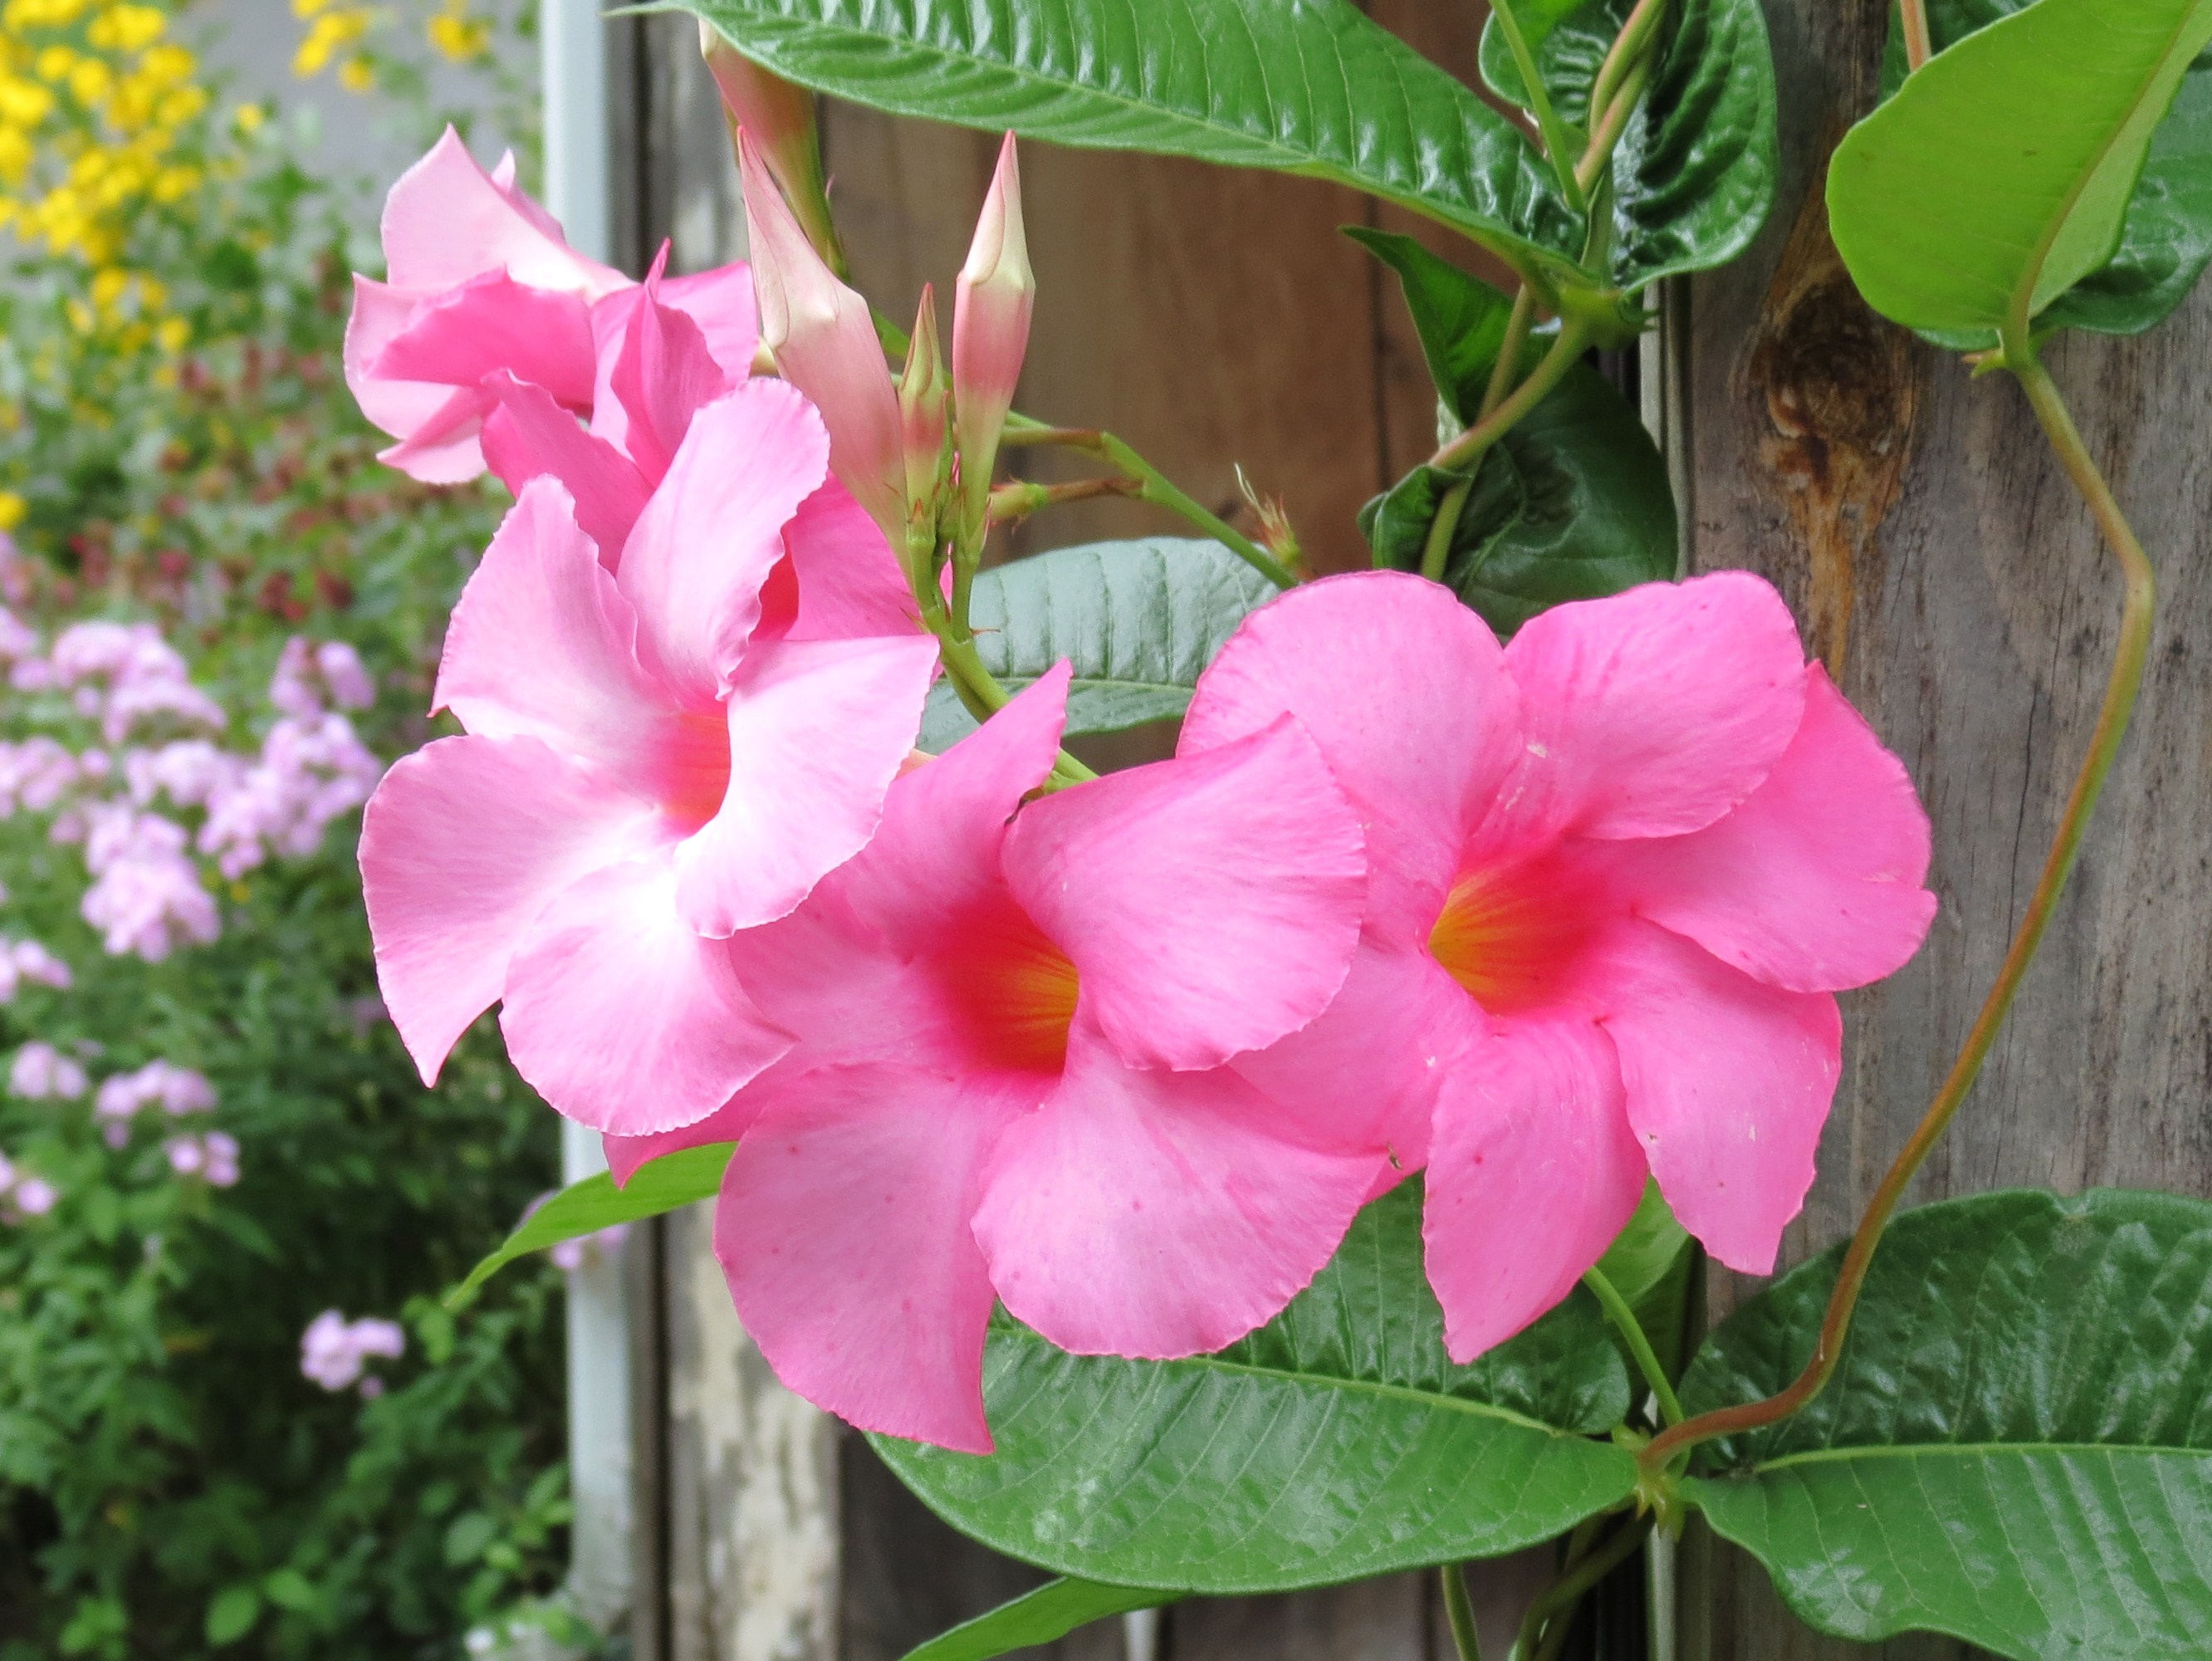 My Yellow Farmhouse Blog Photos Of My Gardens And The Unexpected Perks Of Being A